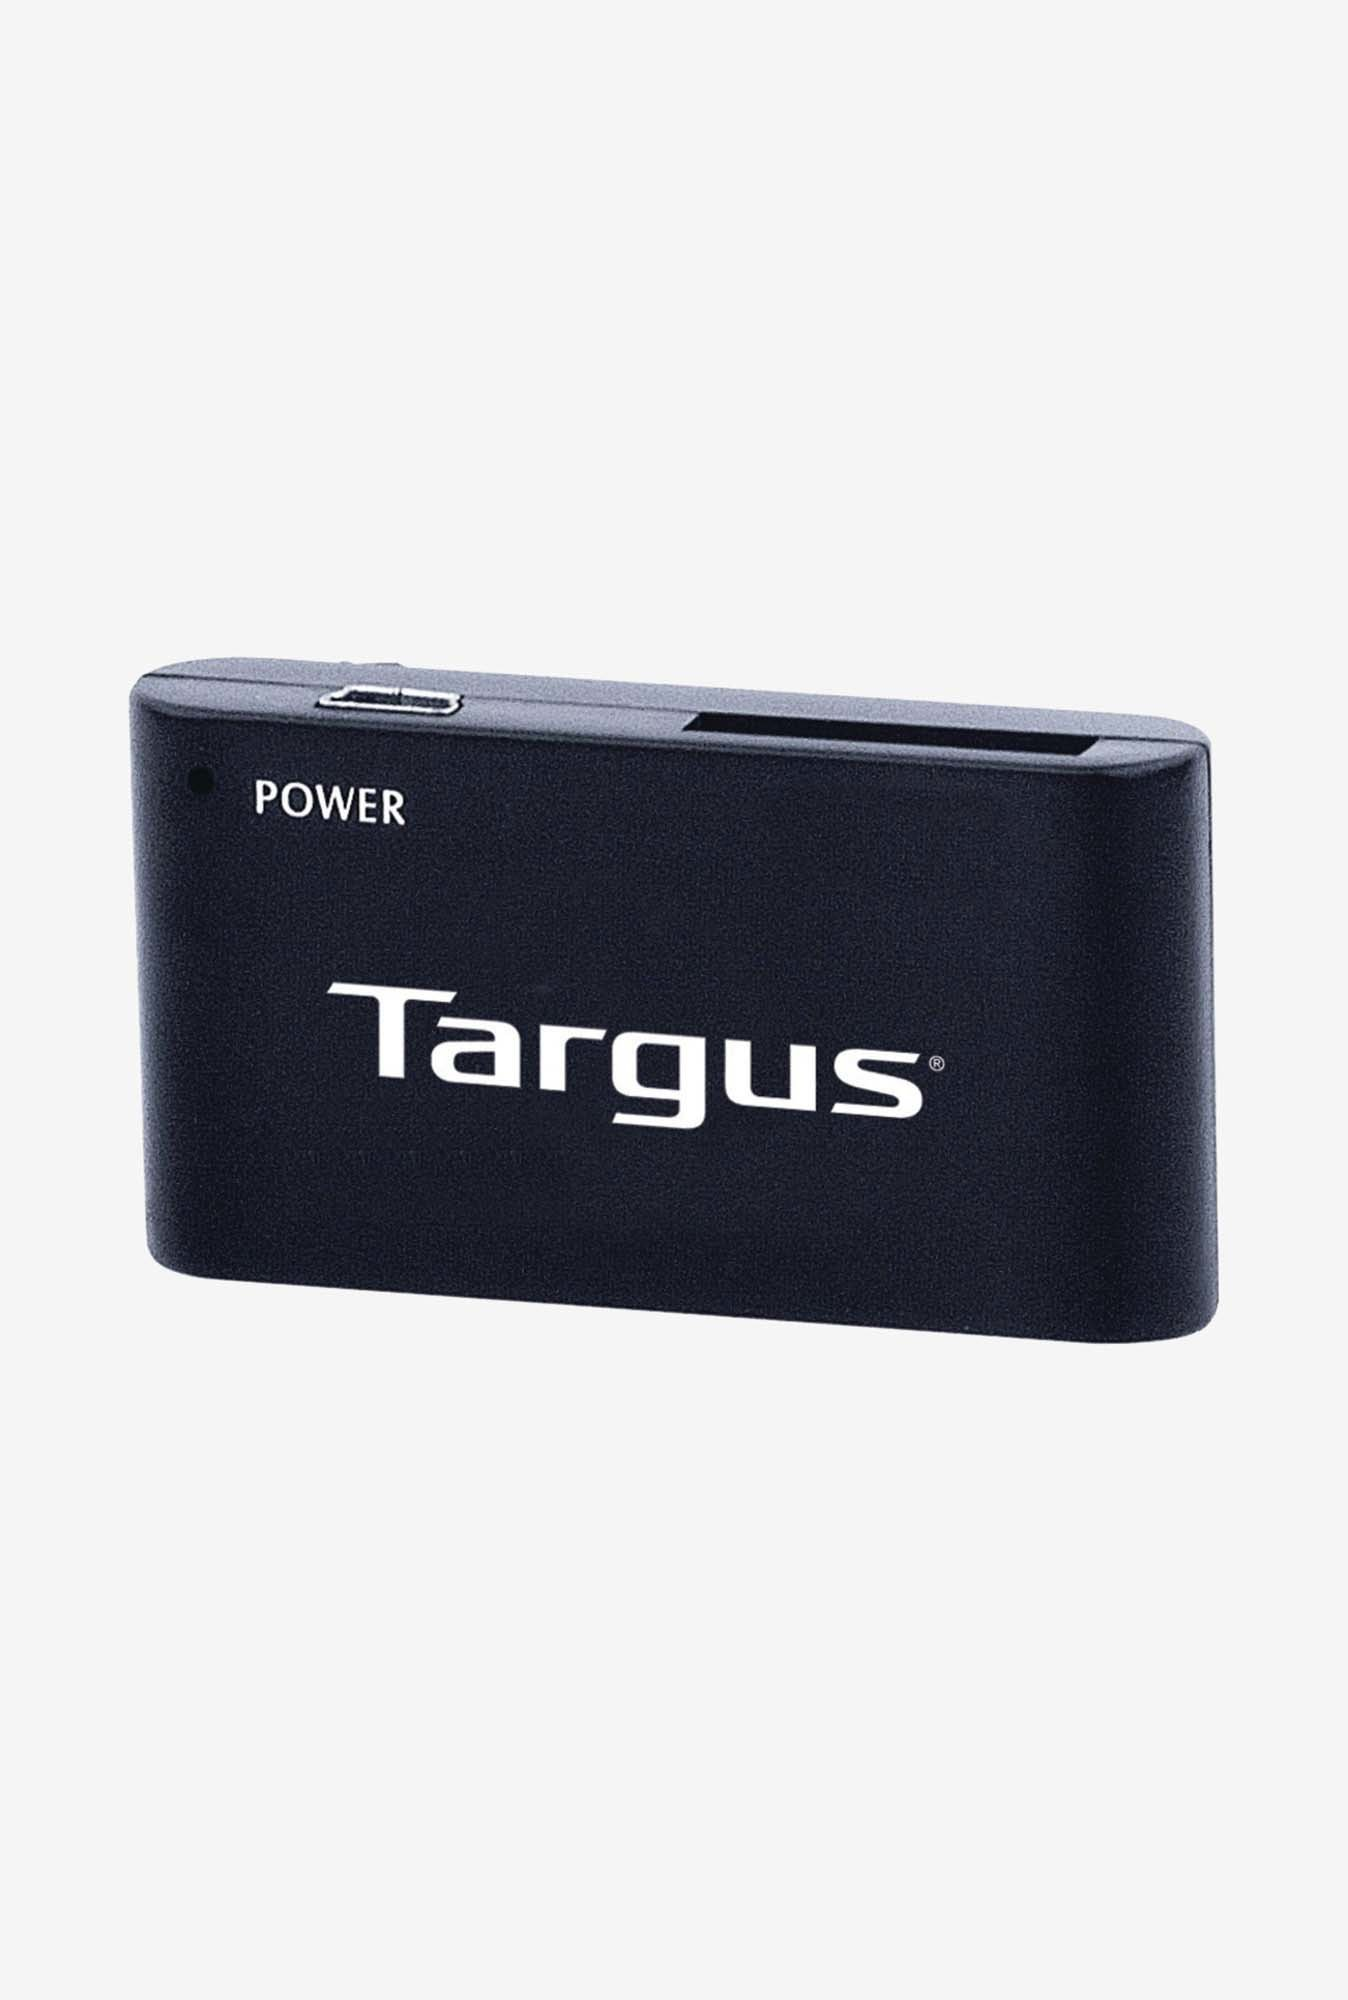 Targus TGR-MSR35 USB 2.0 33 in 1 Card Reader (Black)